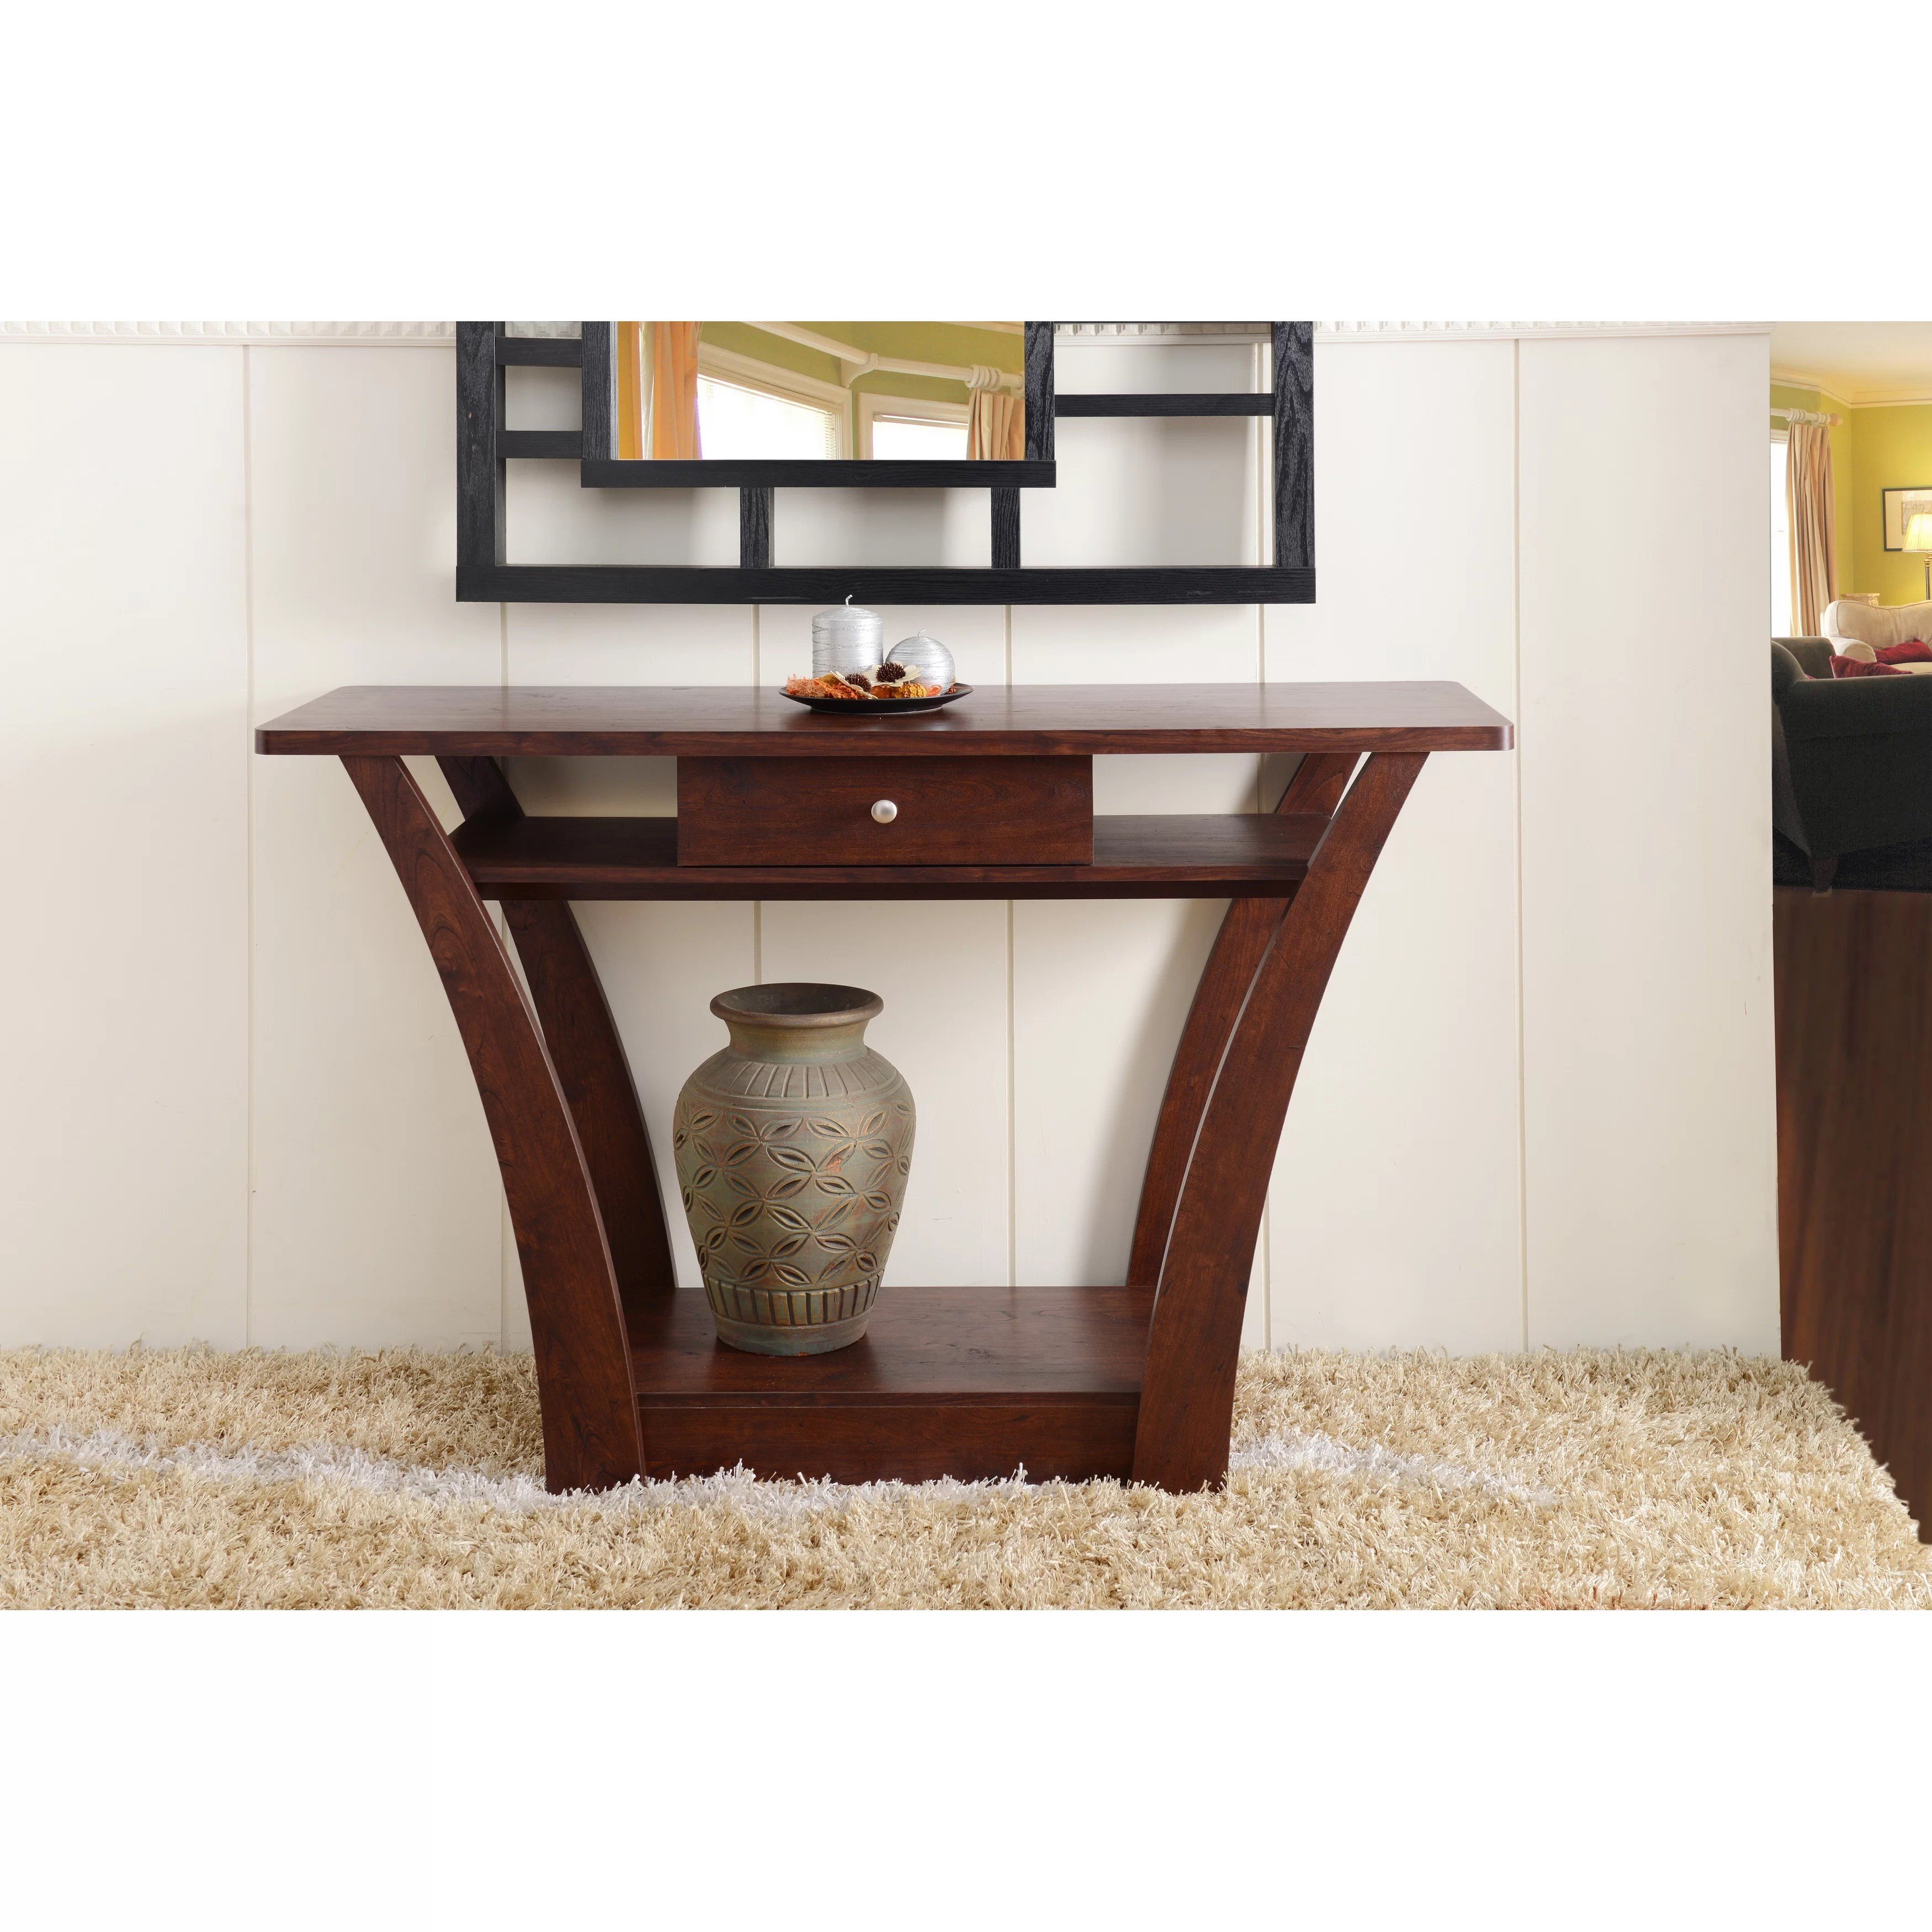 wayfair furniture sofa tables vintage brown leather 2 seater andover mills farrwood console table and reviews